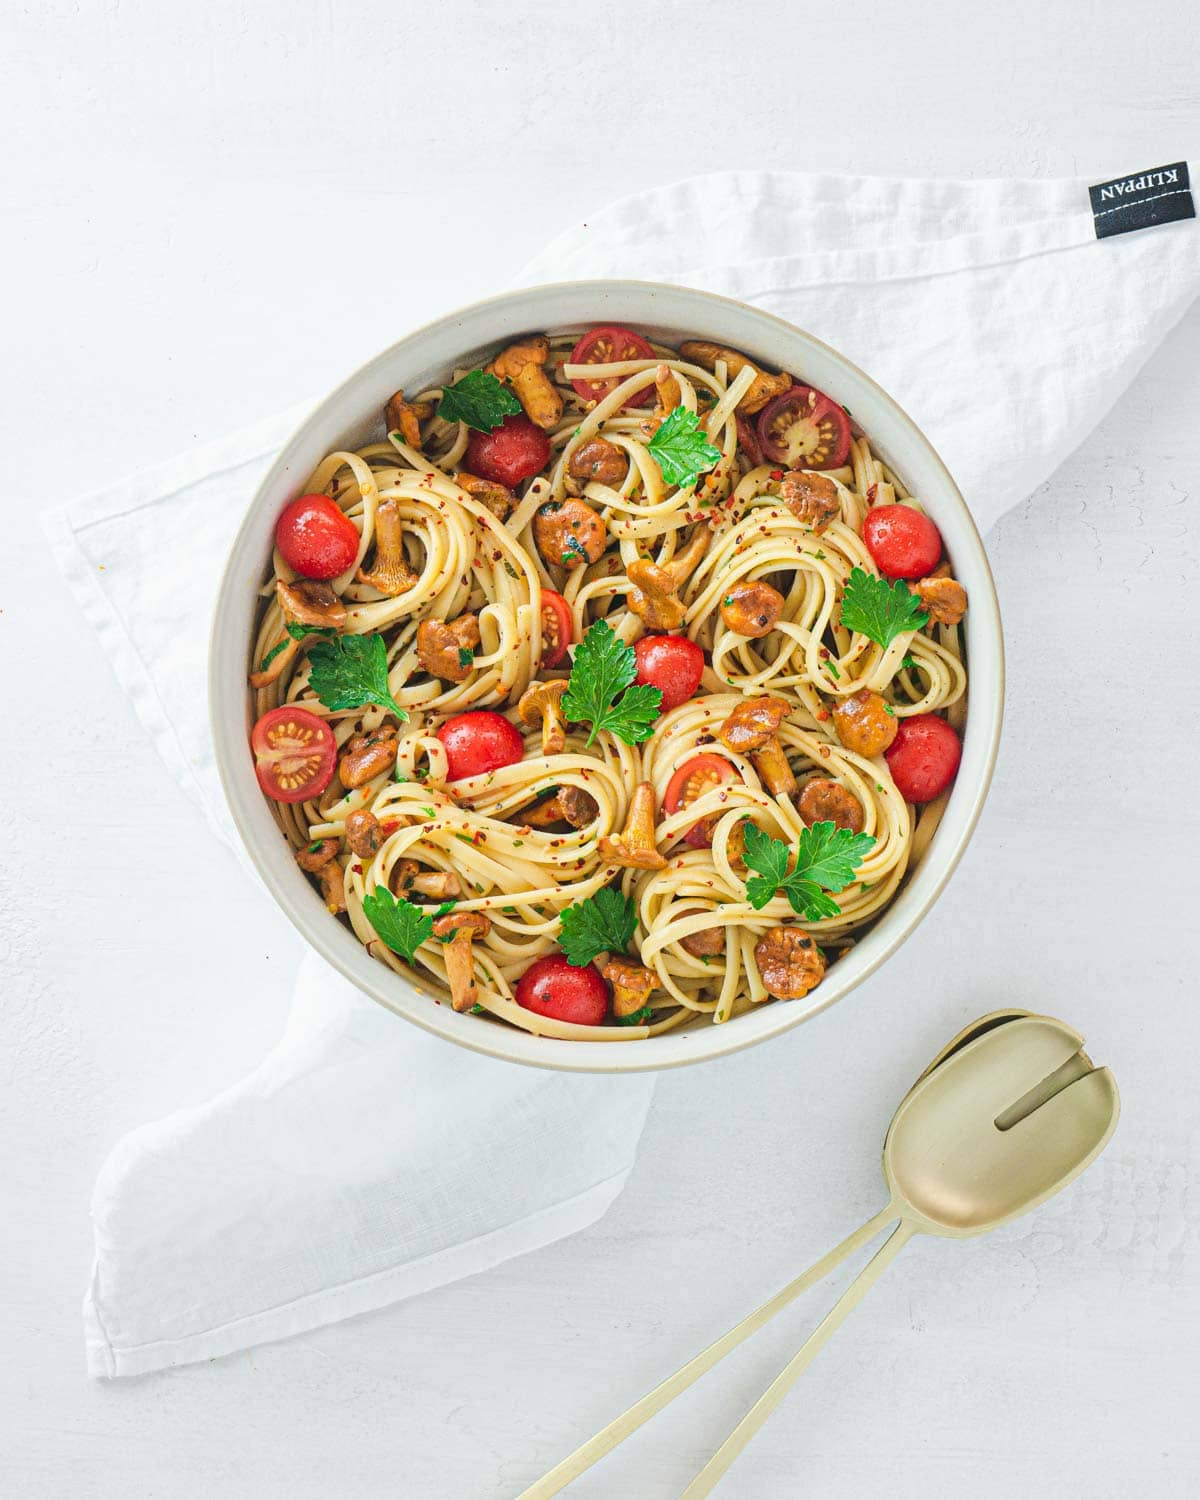 Linguine with chanterelle mushrooms, cherry tomatoes and parsley